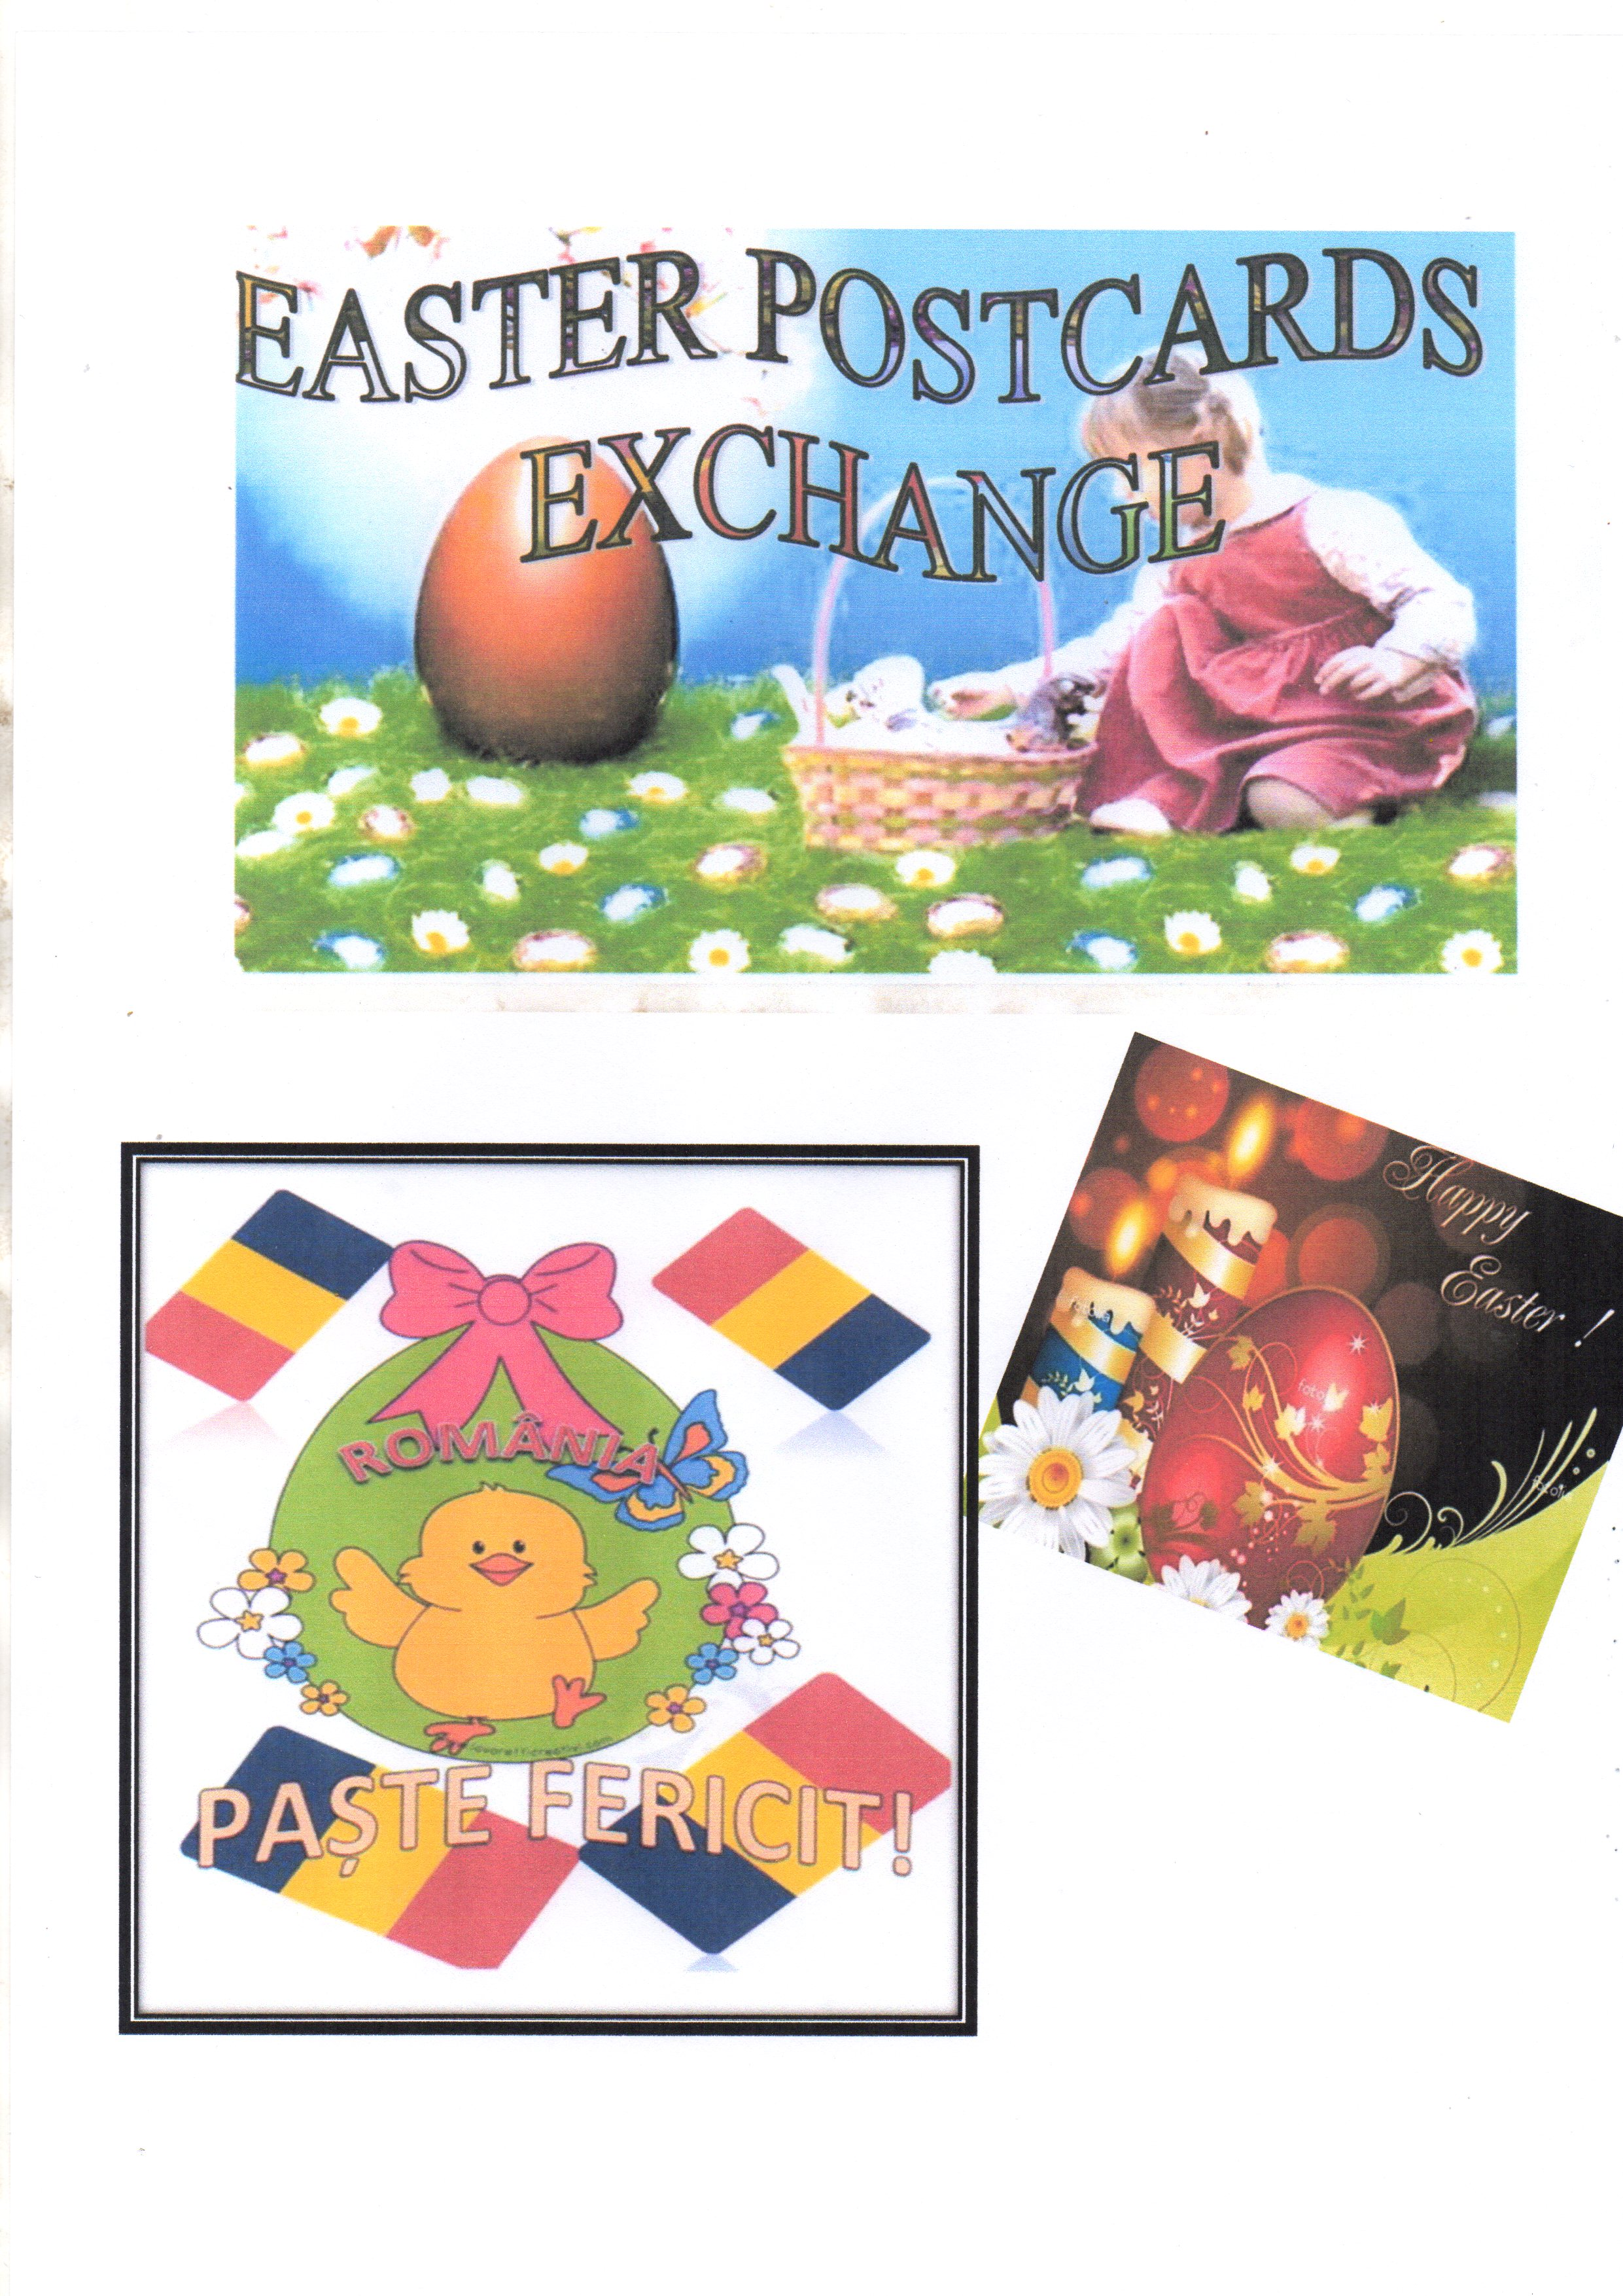 EASTER POSTCARDS EXCHANGE by DRĂGHIN ANIȘOARA - Illustrated by ANISOARA  DRAGHIN - Ourboox.com